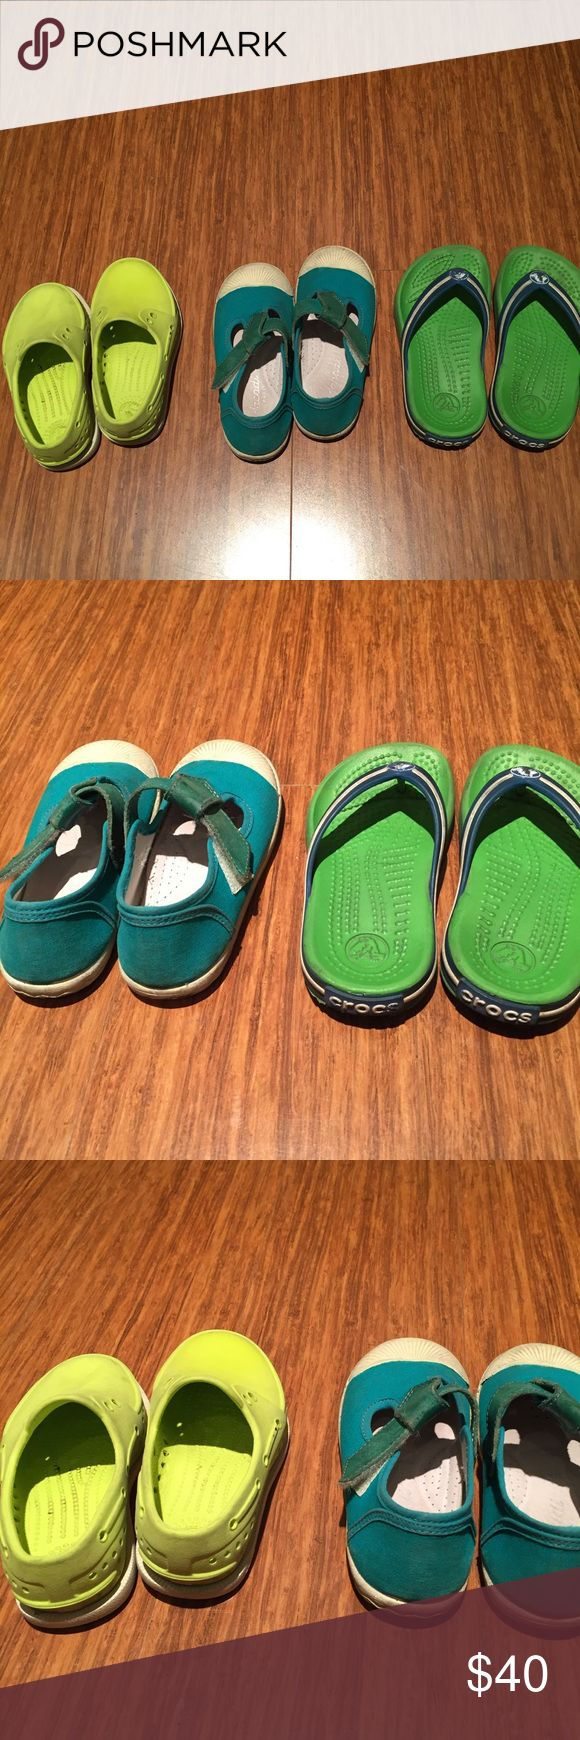 Baby shoes for sale!!! Size 7 Native shoes Size 25 Jacadi shoes ( Jacadi size 25=US size 8-9 ) Size 8-9 Crocs  Bought all from South Coast Plaza Jacadi store and Nordstrom. Worn by only one kid. good condition. If you buy it I'll do laundry for you before I send it. :) Jacadi, Native shoes, Crocs Shoes